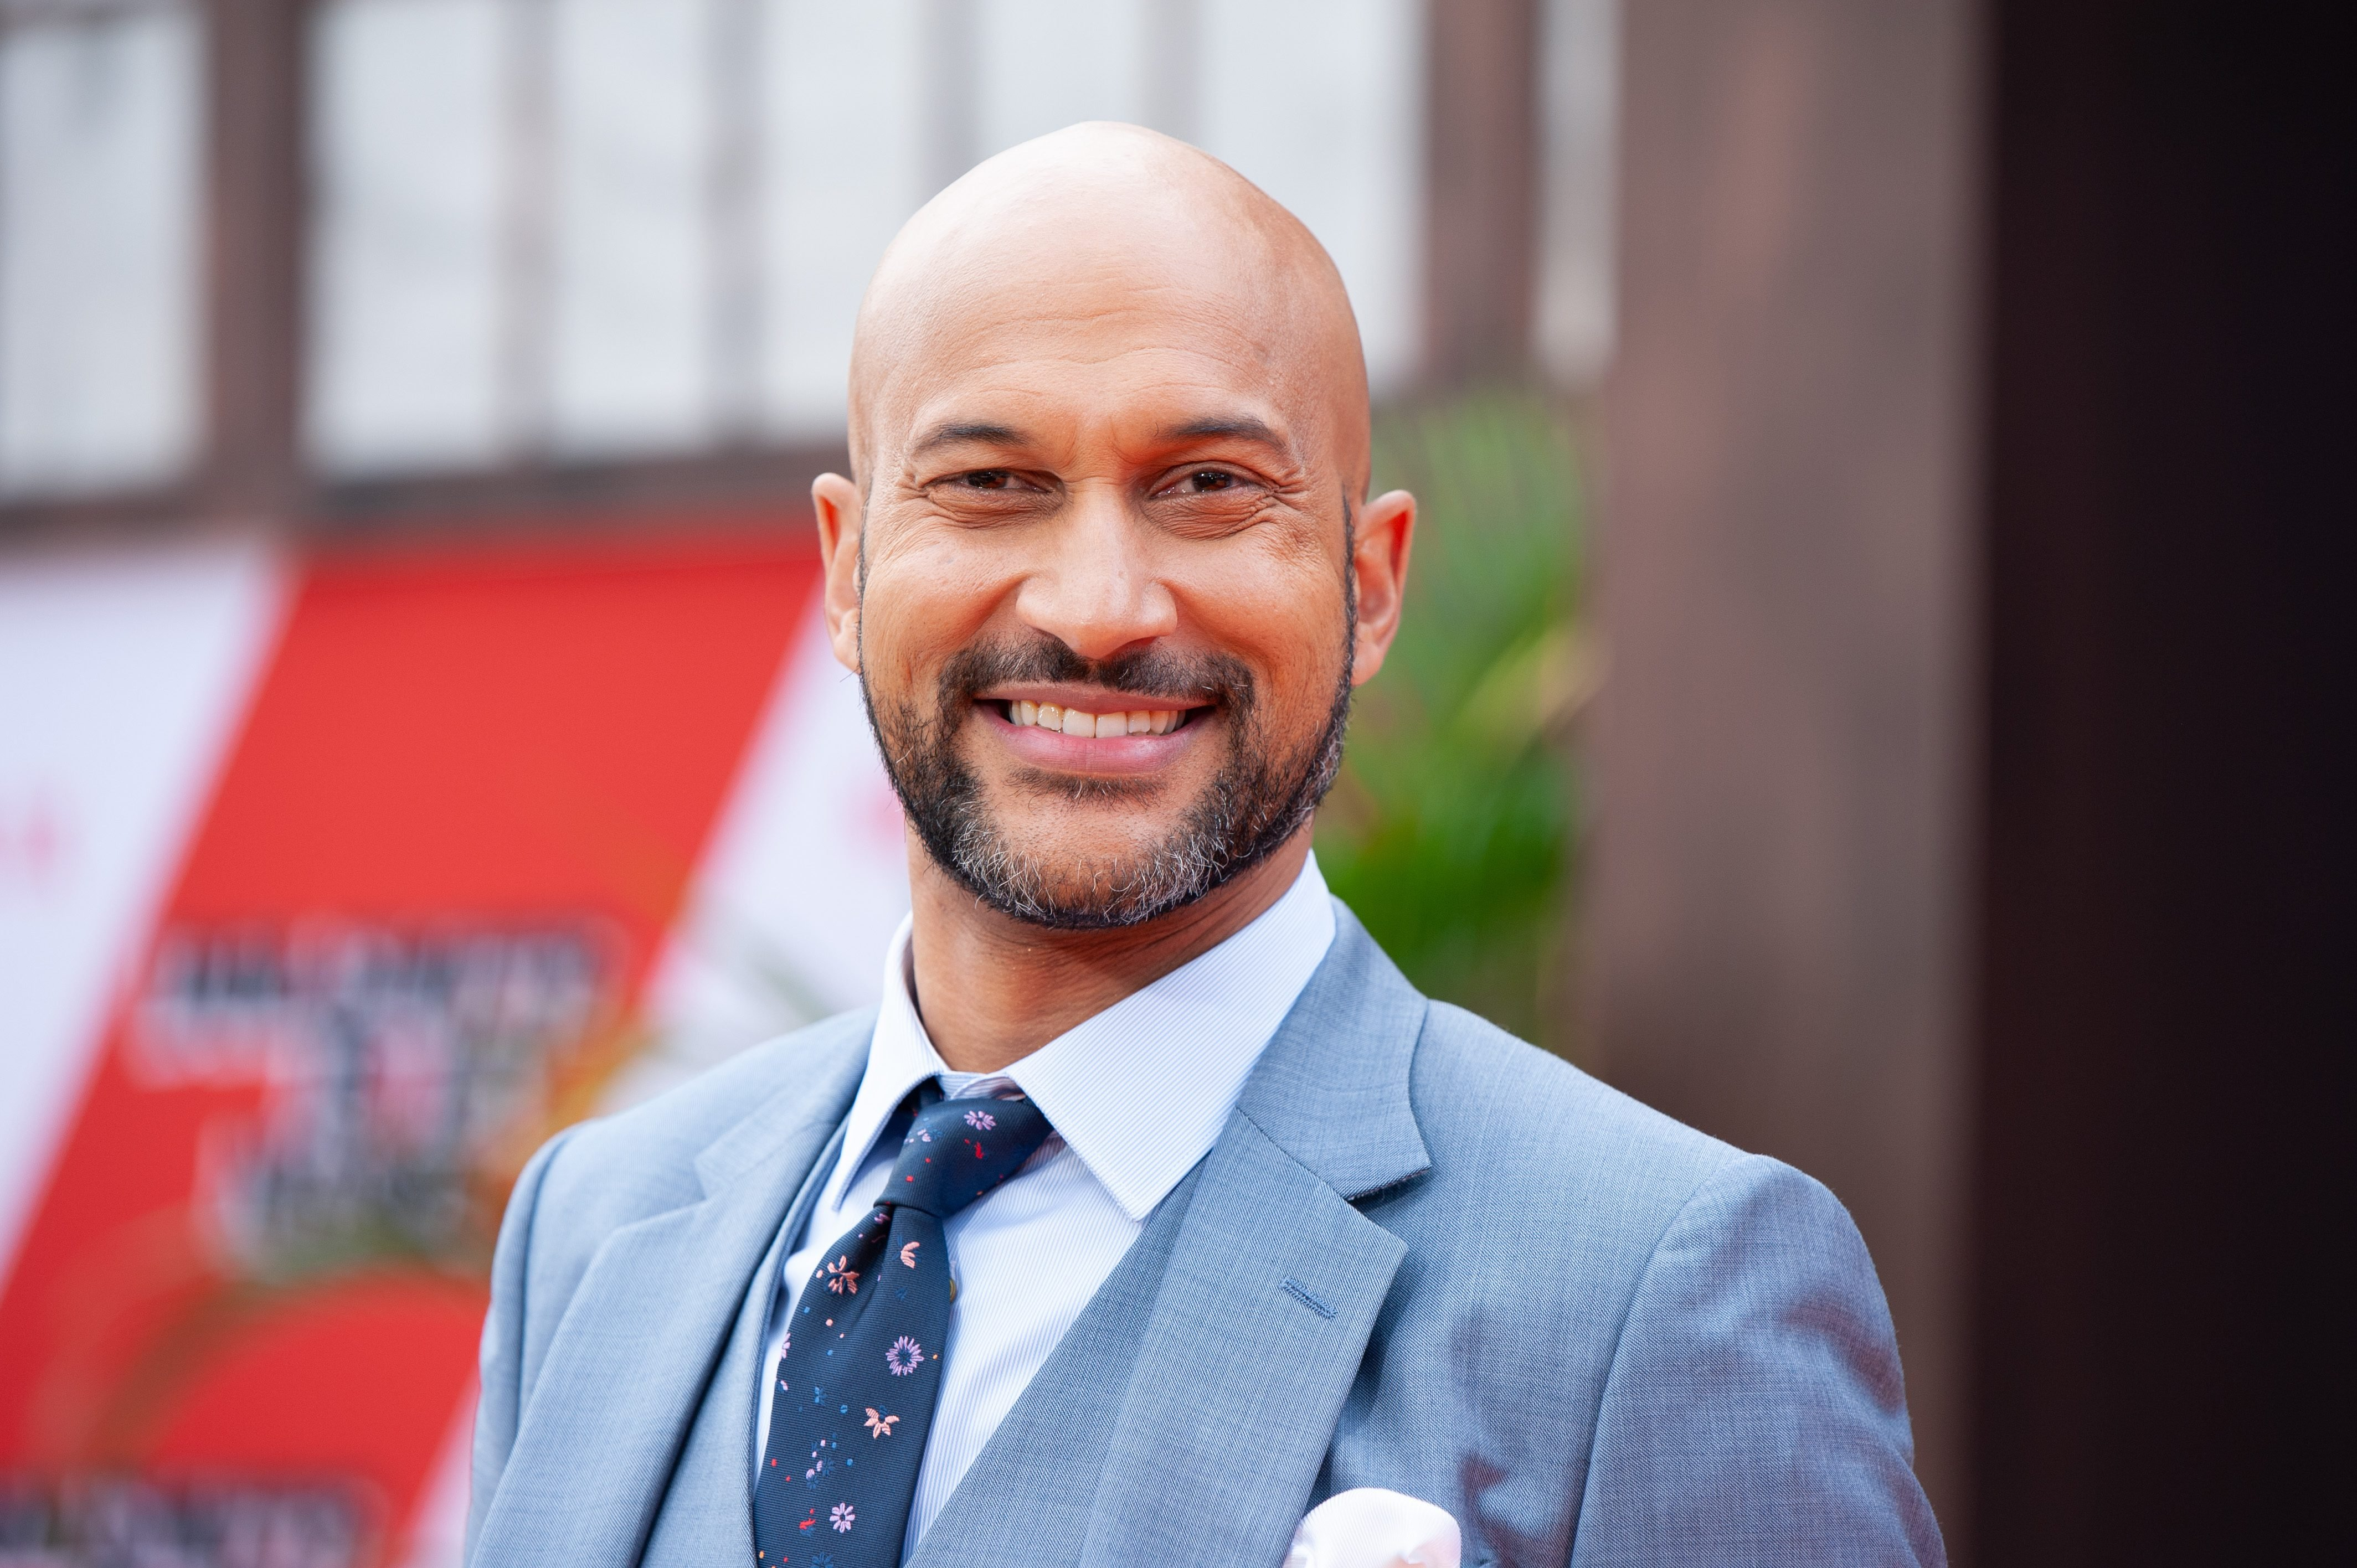 Mandatory Credit: Photo by CHRISTIAN MONTERROSA/EPA-EFE/Shutterstock (10429461o) Keegan-Michael Key poses on the red carpet during the premiere of the Netflix film Dolemite Is My Name at the Regency Village Theatre in Los Angeles, California, USA, 28 September 2019. Dolemite Is My Name Premiere in Los Angeles, USA - 28 Sep 2019